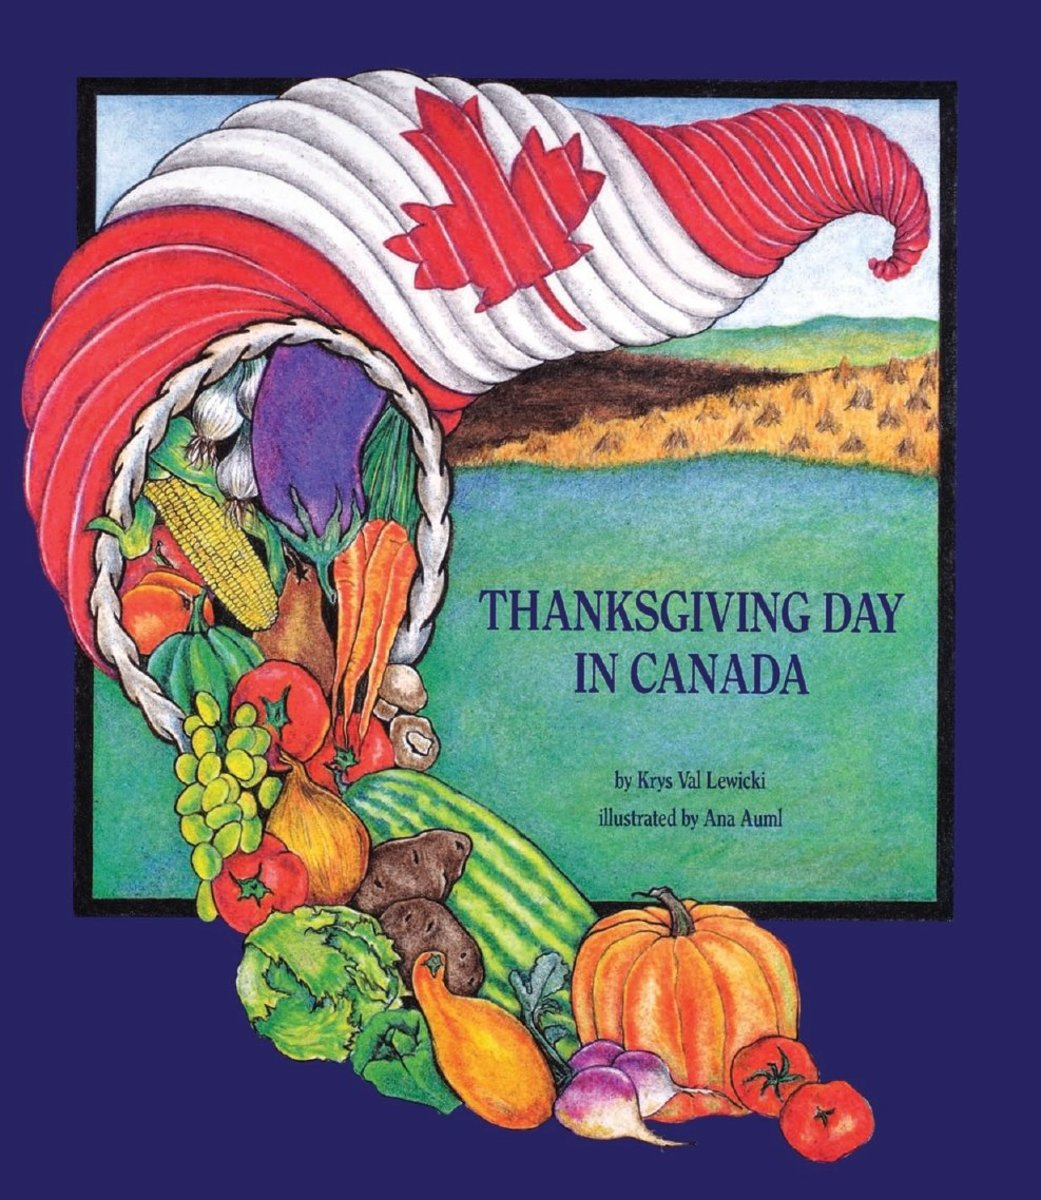 Thanksgiving Day in Canada Children's Book Review